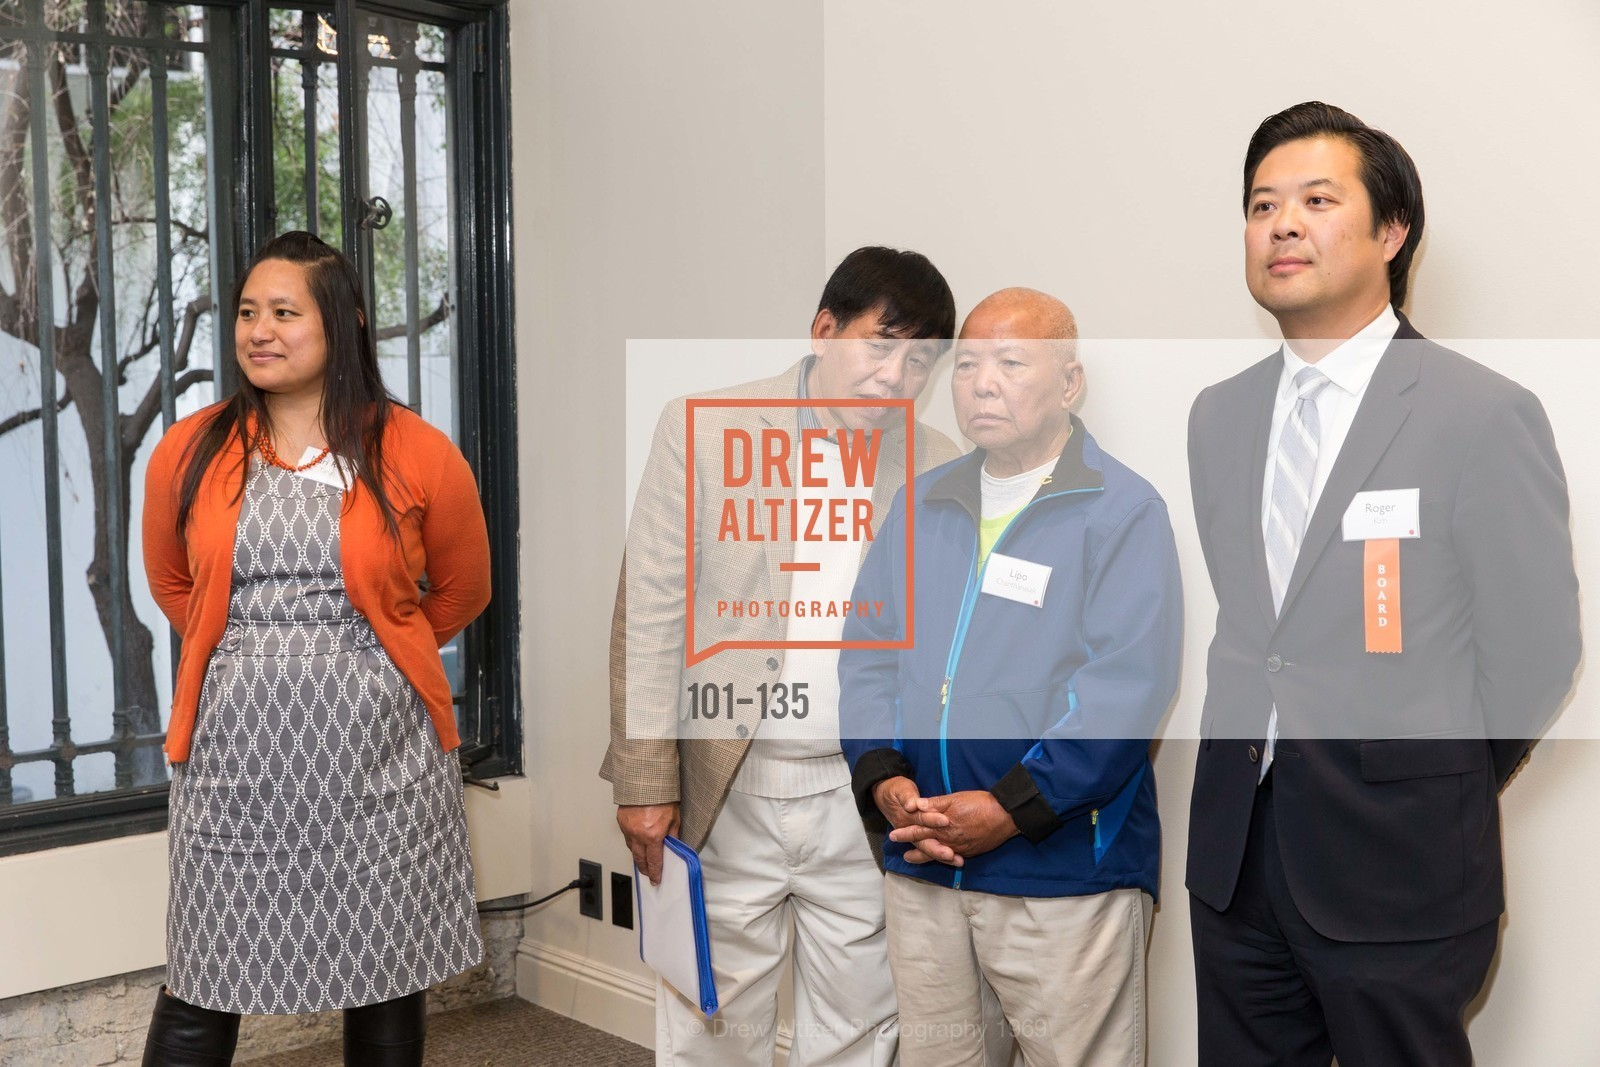 Mari Rose Taruc, Torm Nompraseurt, Lipo Chanthanasak, Roger Kim, Center for Environmental Health  2015 Gala, Bently Reserve, May 27th, 2015,Drew Altizer, Drew Altizer Photography, full-service agency, private events, San Francisco photographer, photographer california